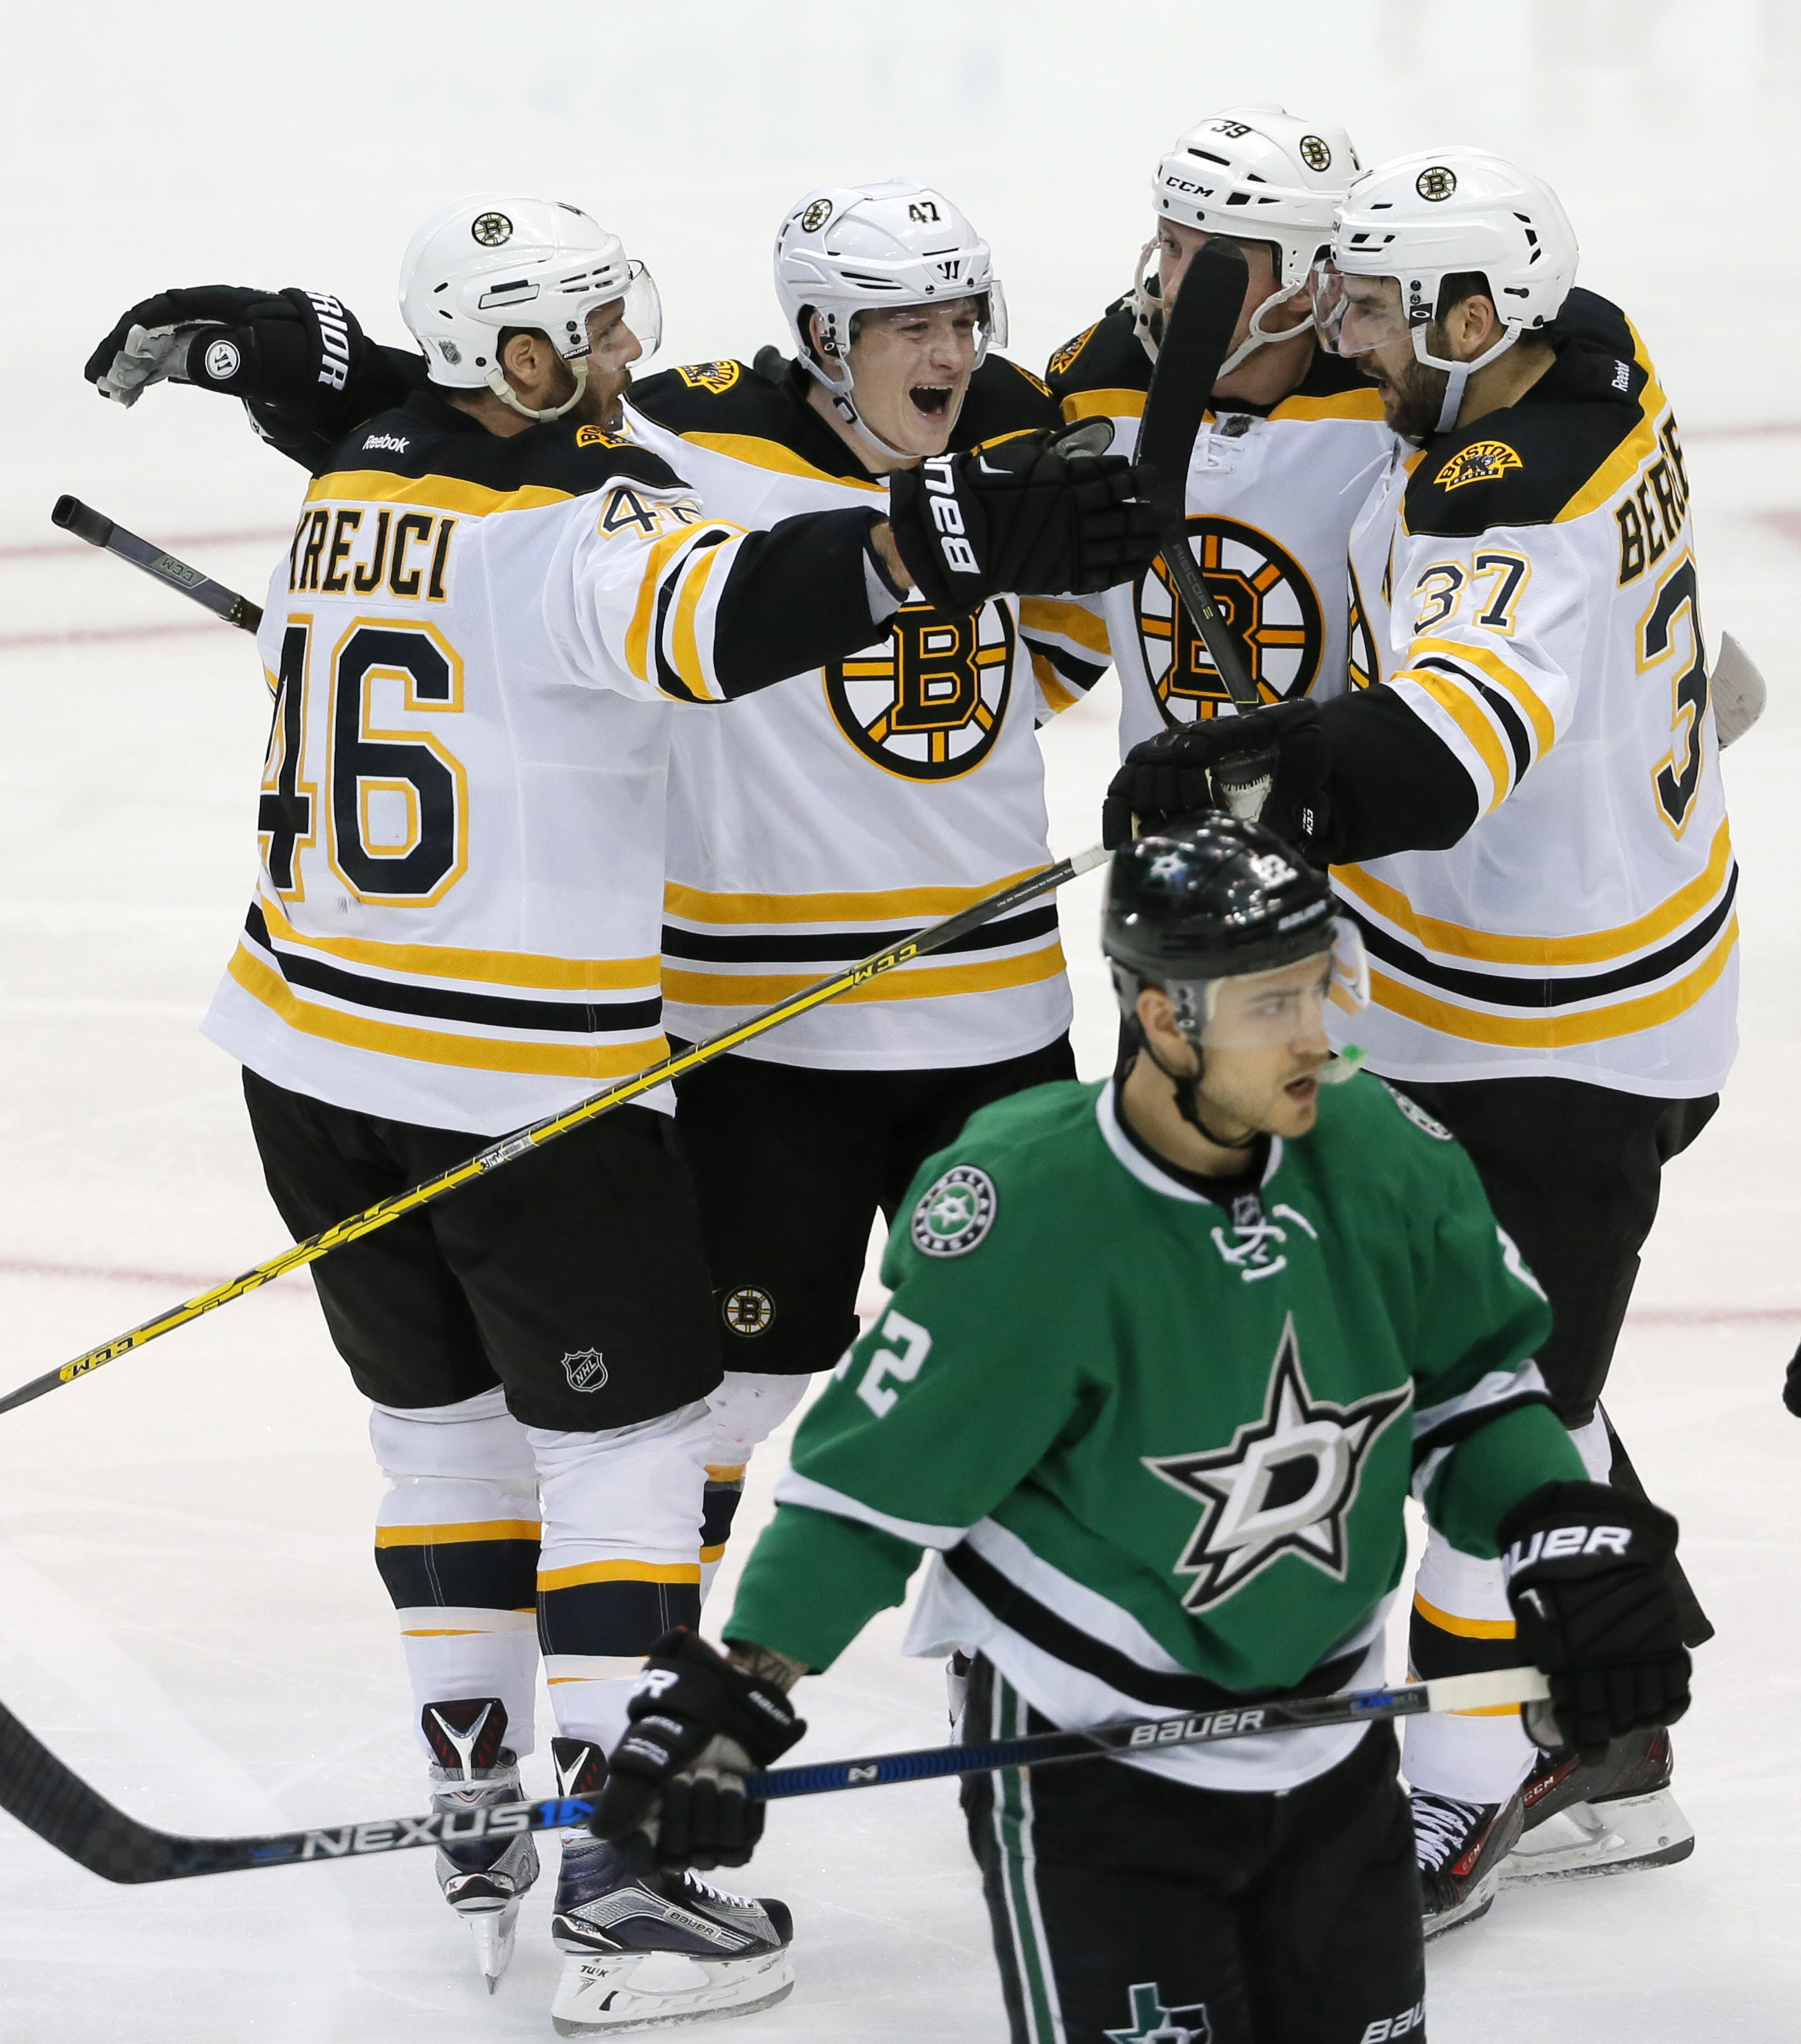 Dallas Stars' Colton Sceviour (22) skates past as Boston Bruins' David Krejci (46), of the Czech Republic, Torey Krug (47), Matt Beleskey (39) and Patrice Bergeron (37) celebrate a goal by Krejci during the third period of an NHL hockey game, Saturday, Fe